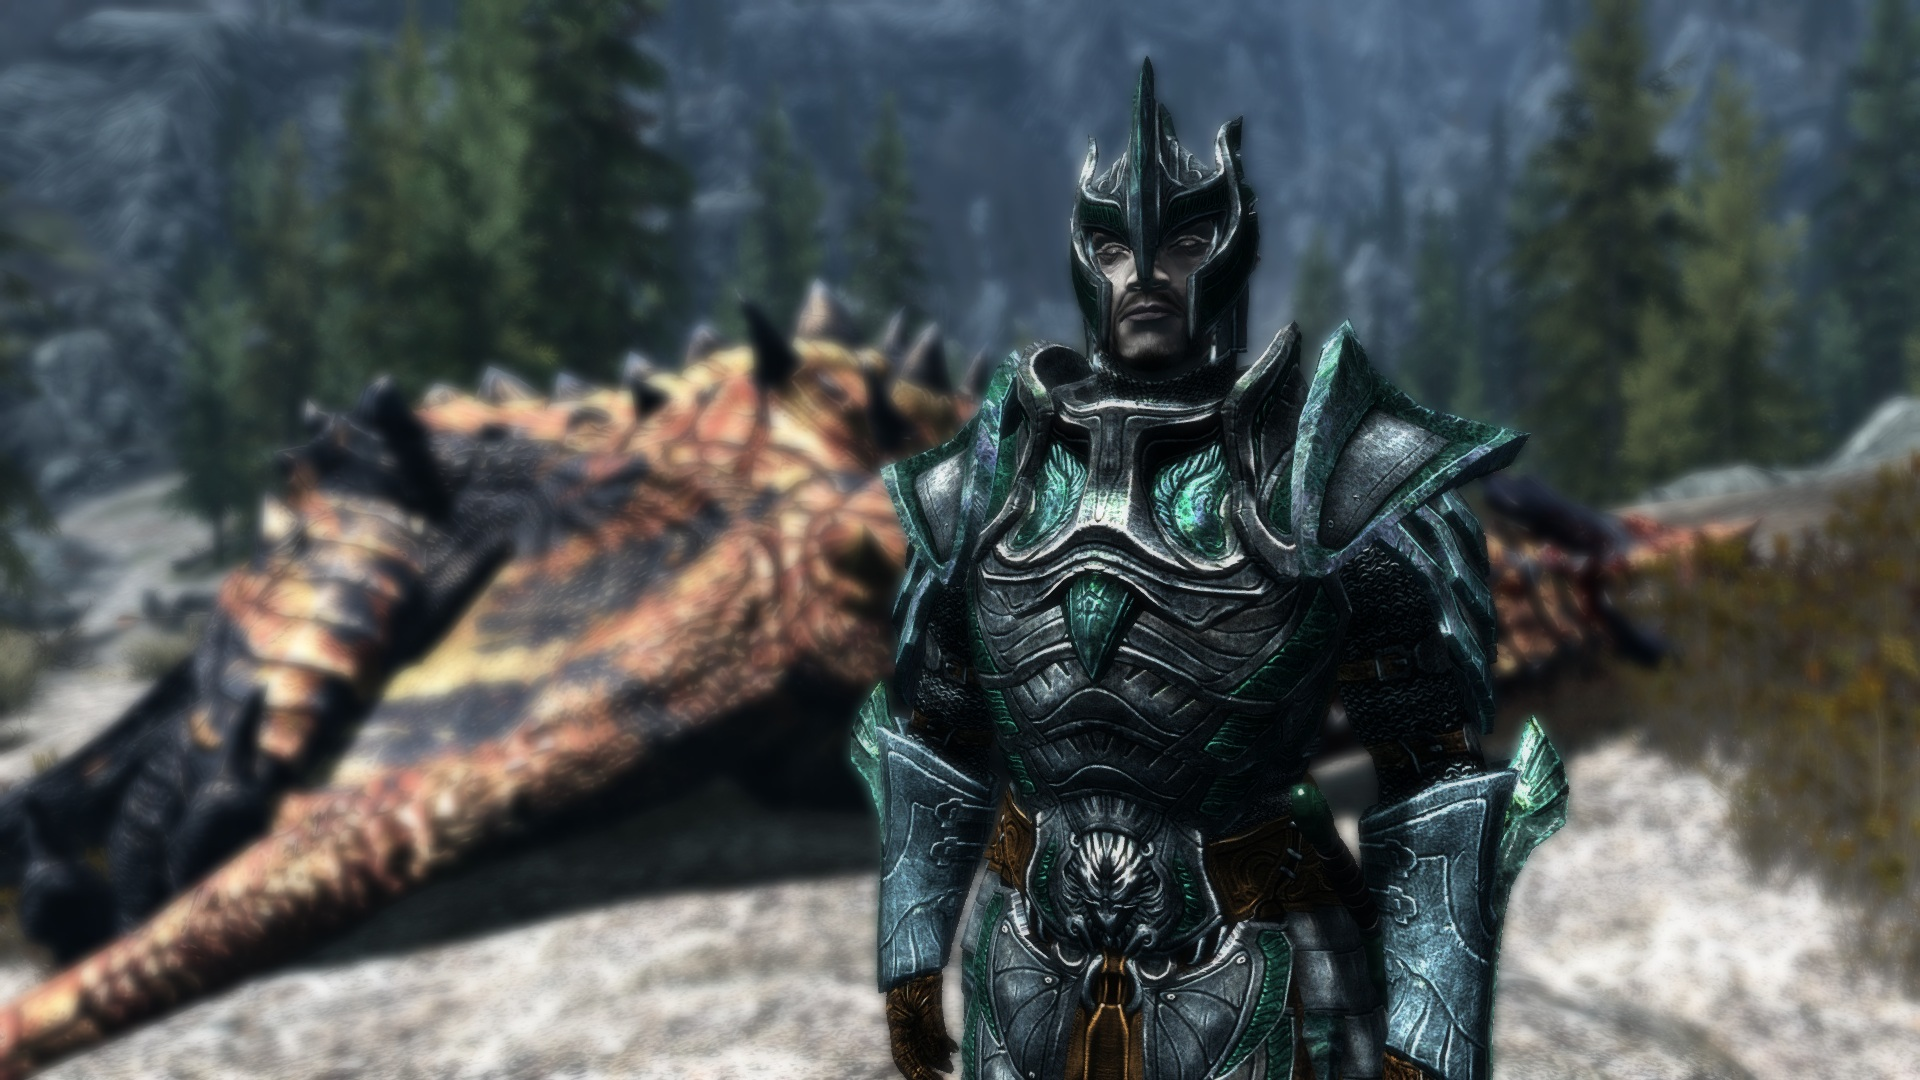 Speak your dialogue lines out loud in Skyrim VR with this